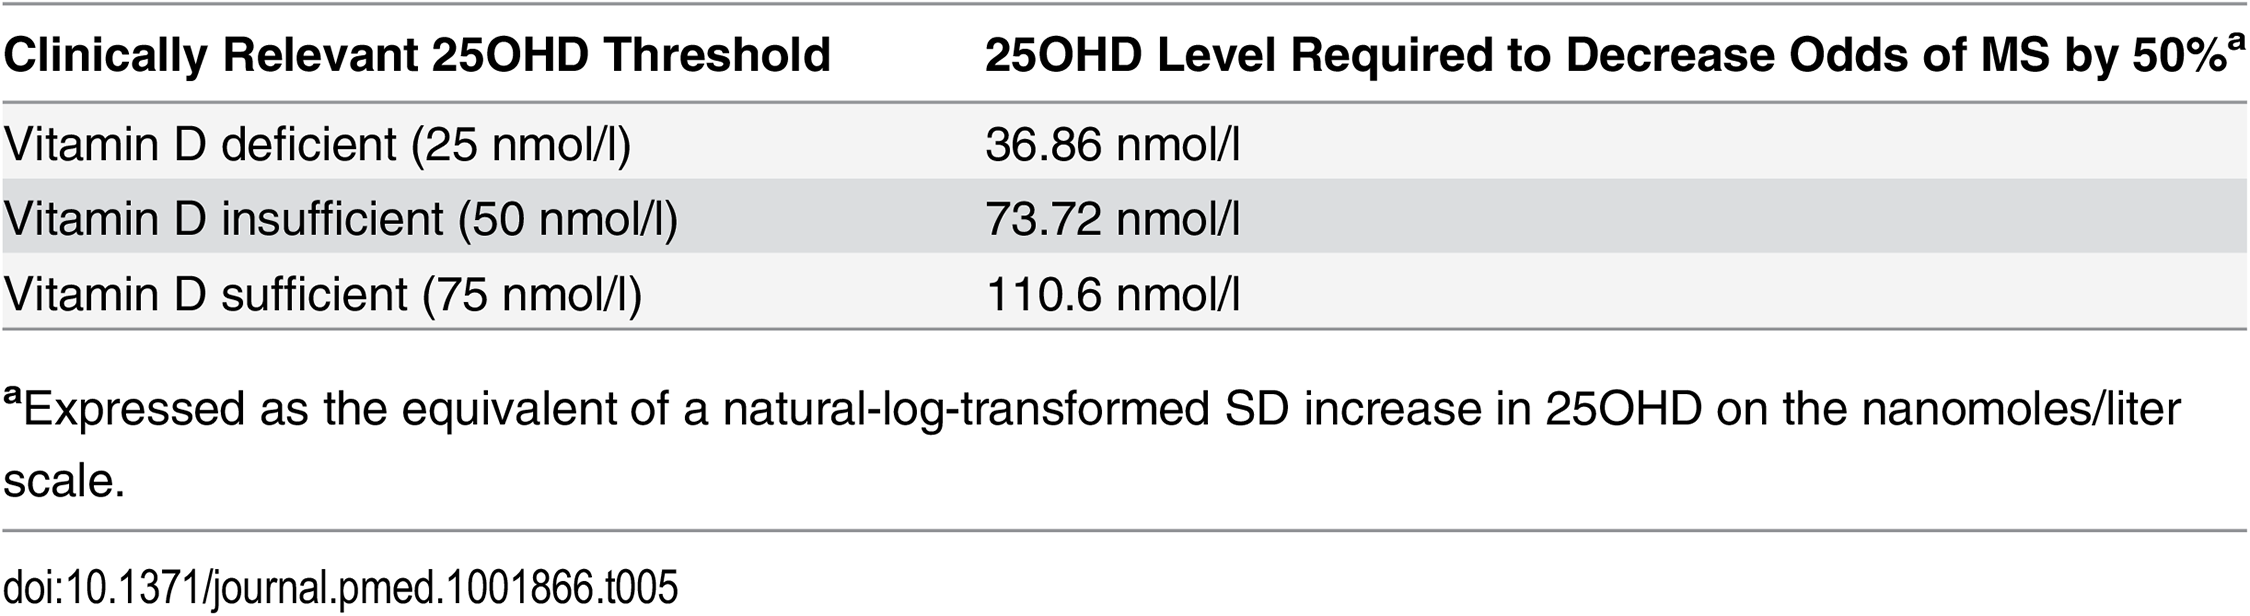 Clinical equivalence of a 1-SD natural-log increase in 25OHD for various vitamin D thresholds.